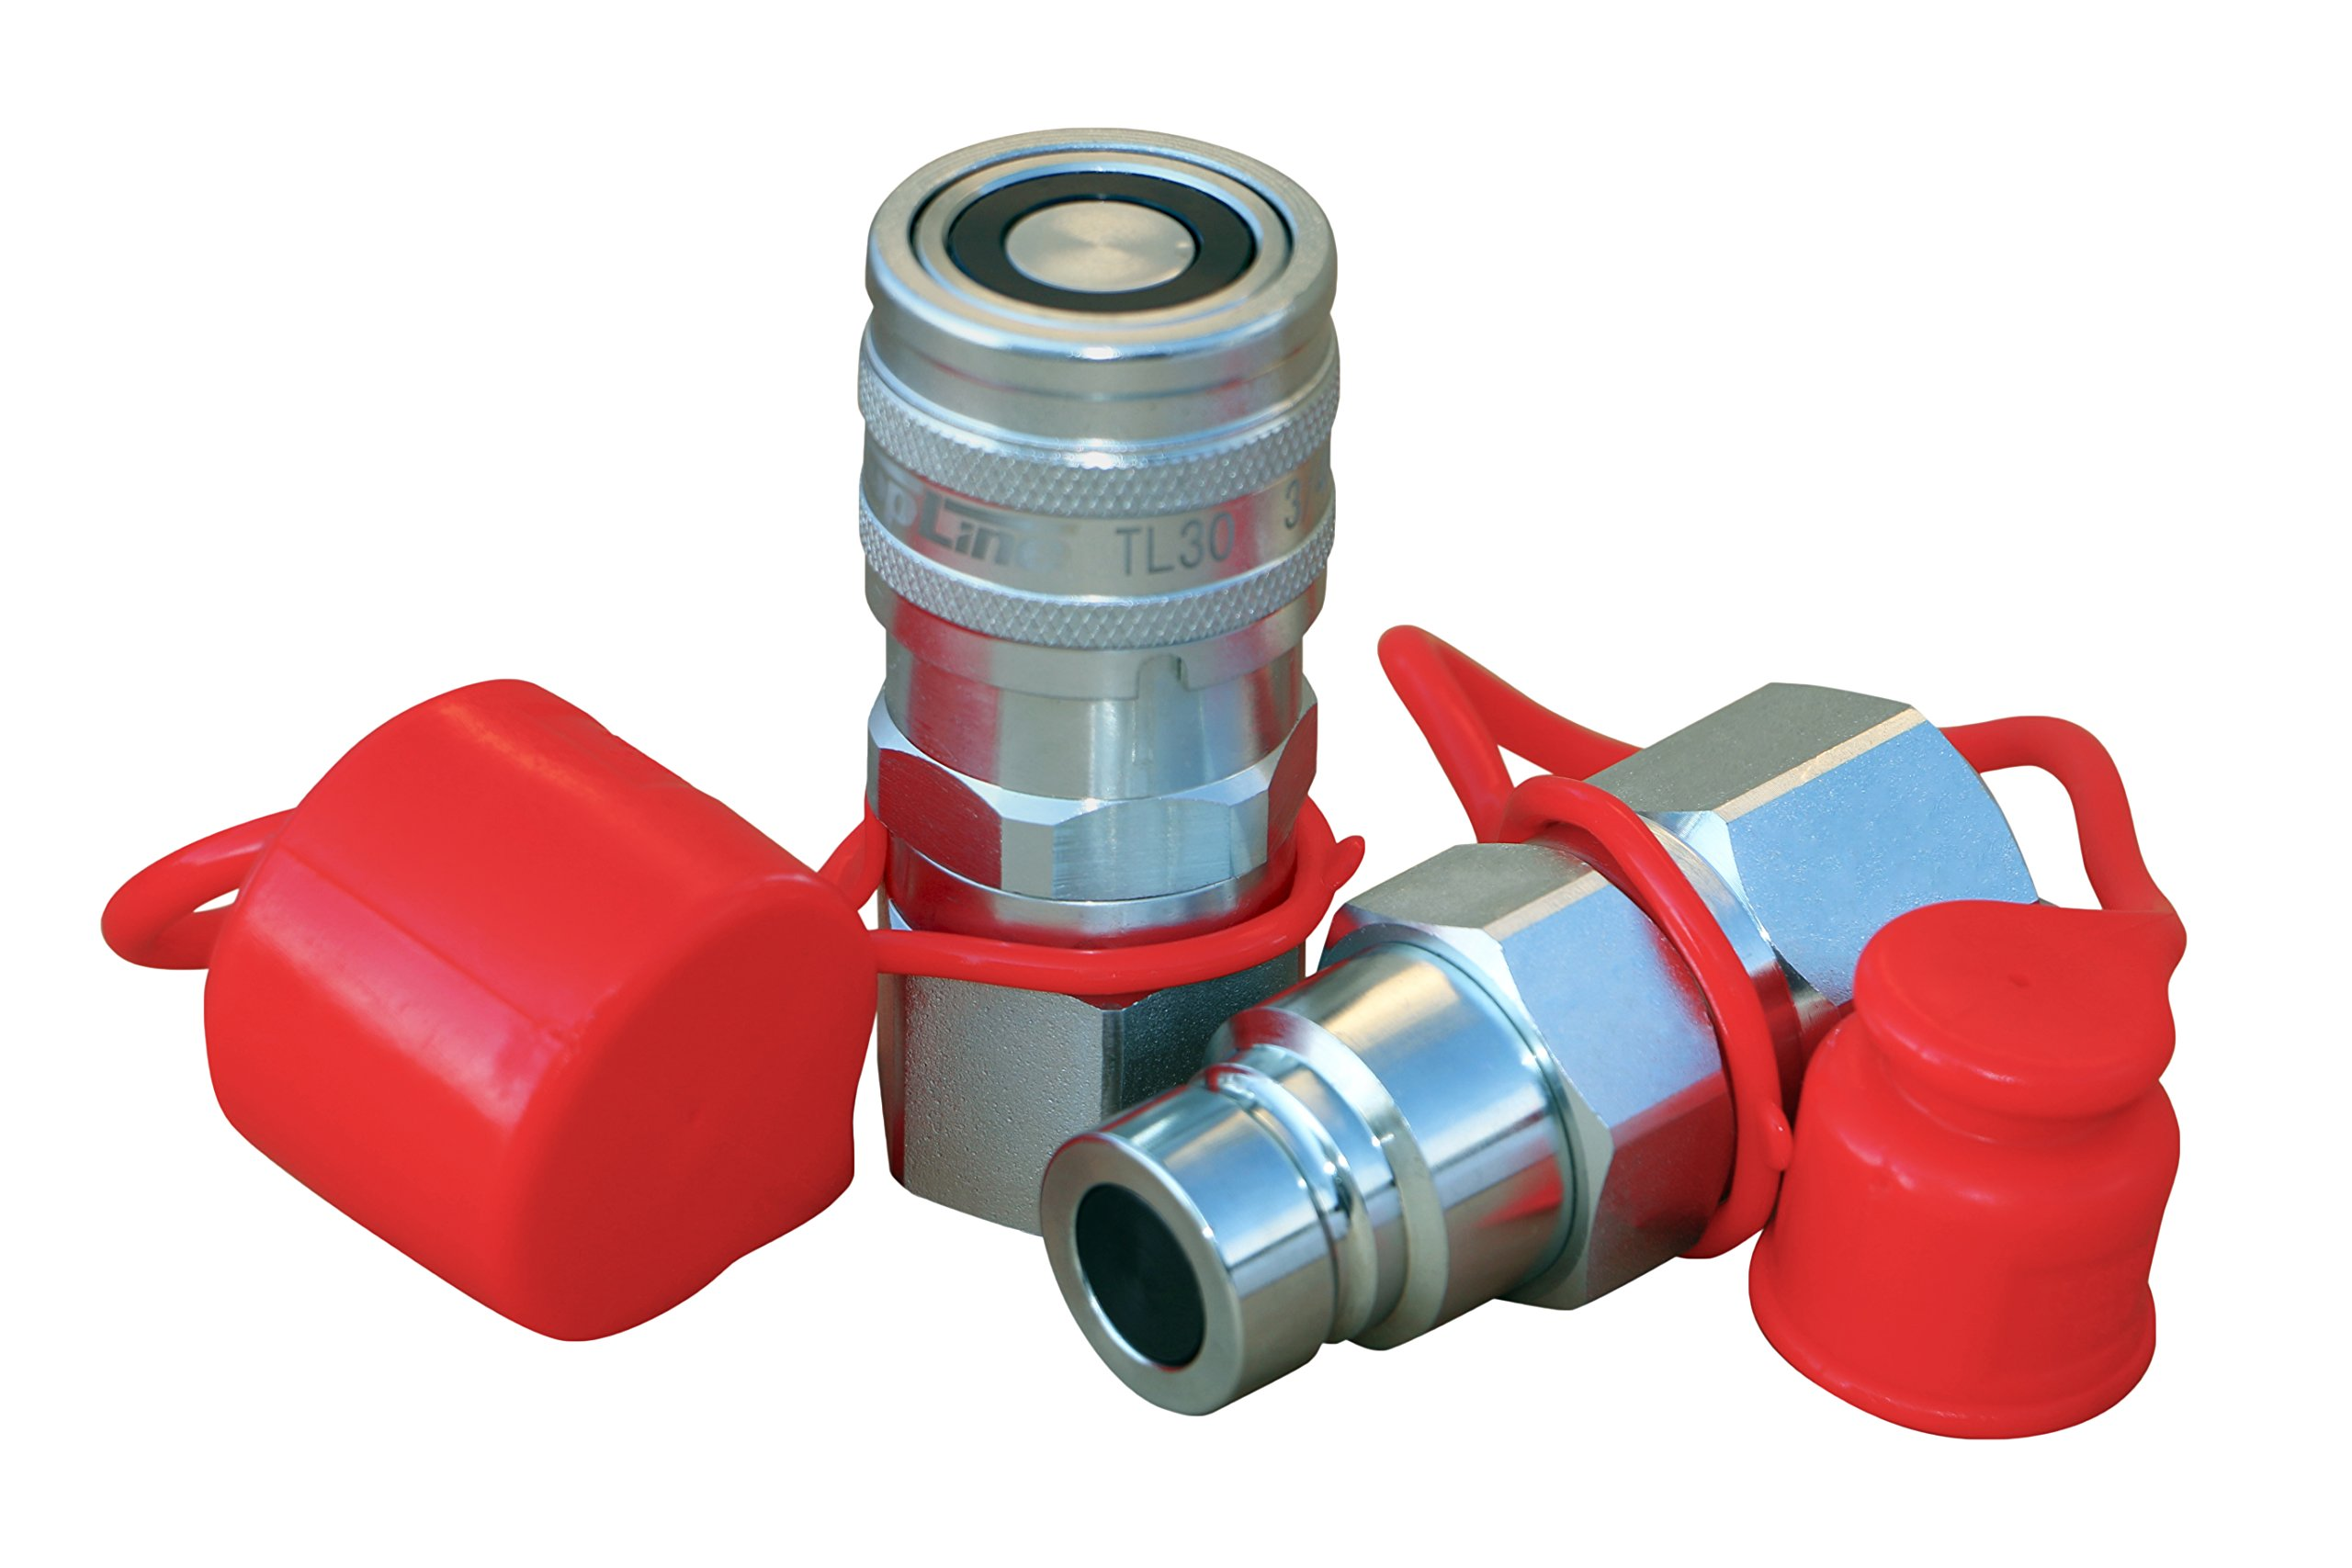 TL30 3/4'' NPT Thread 1/2'' Body Size Flat Face Quick Connect Hydraulic Coupler w/dust caps Coupling Bobcat Skid Steer Loader